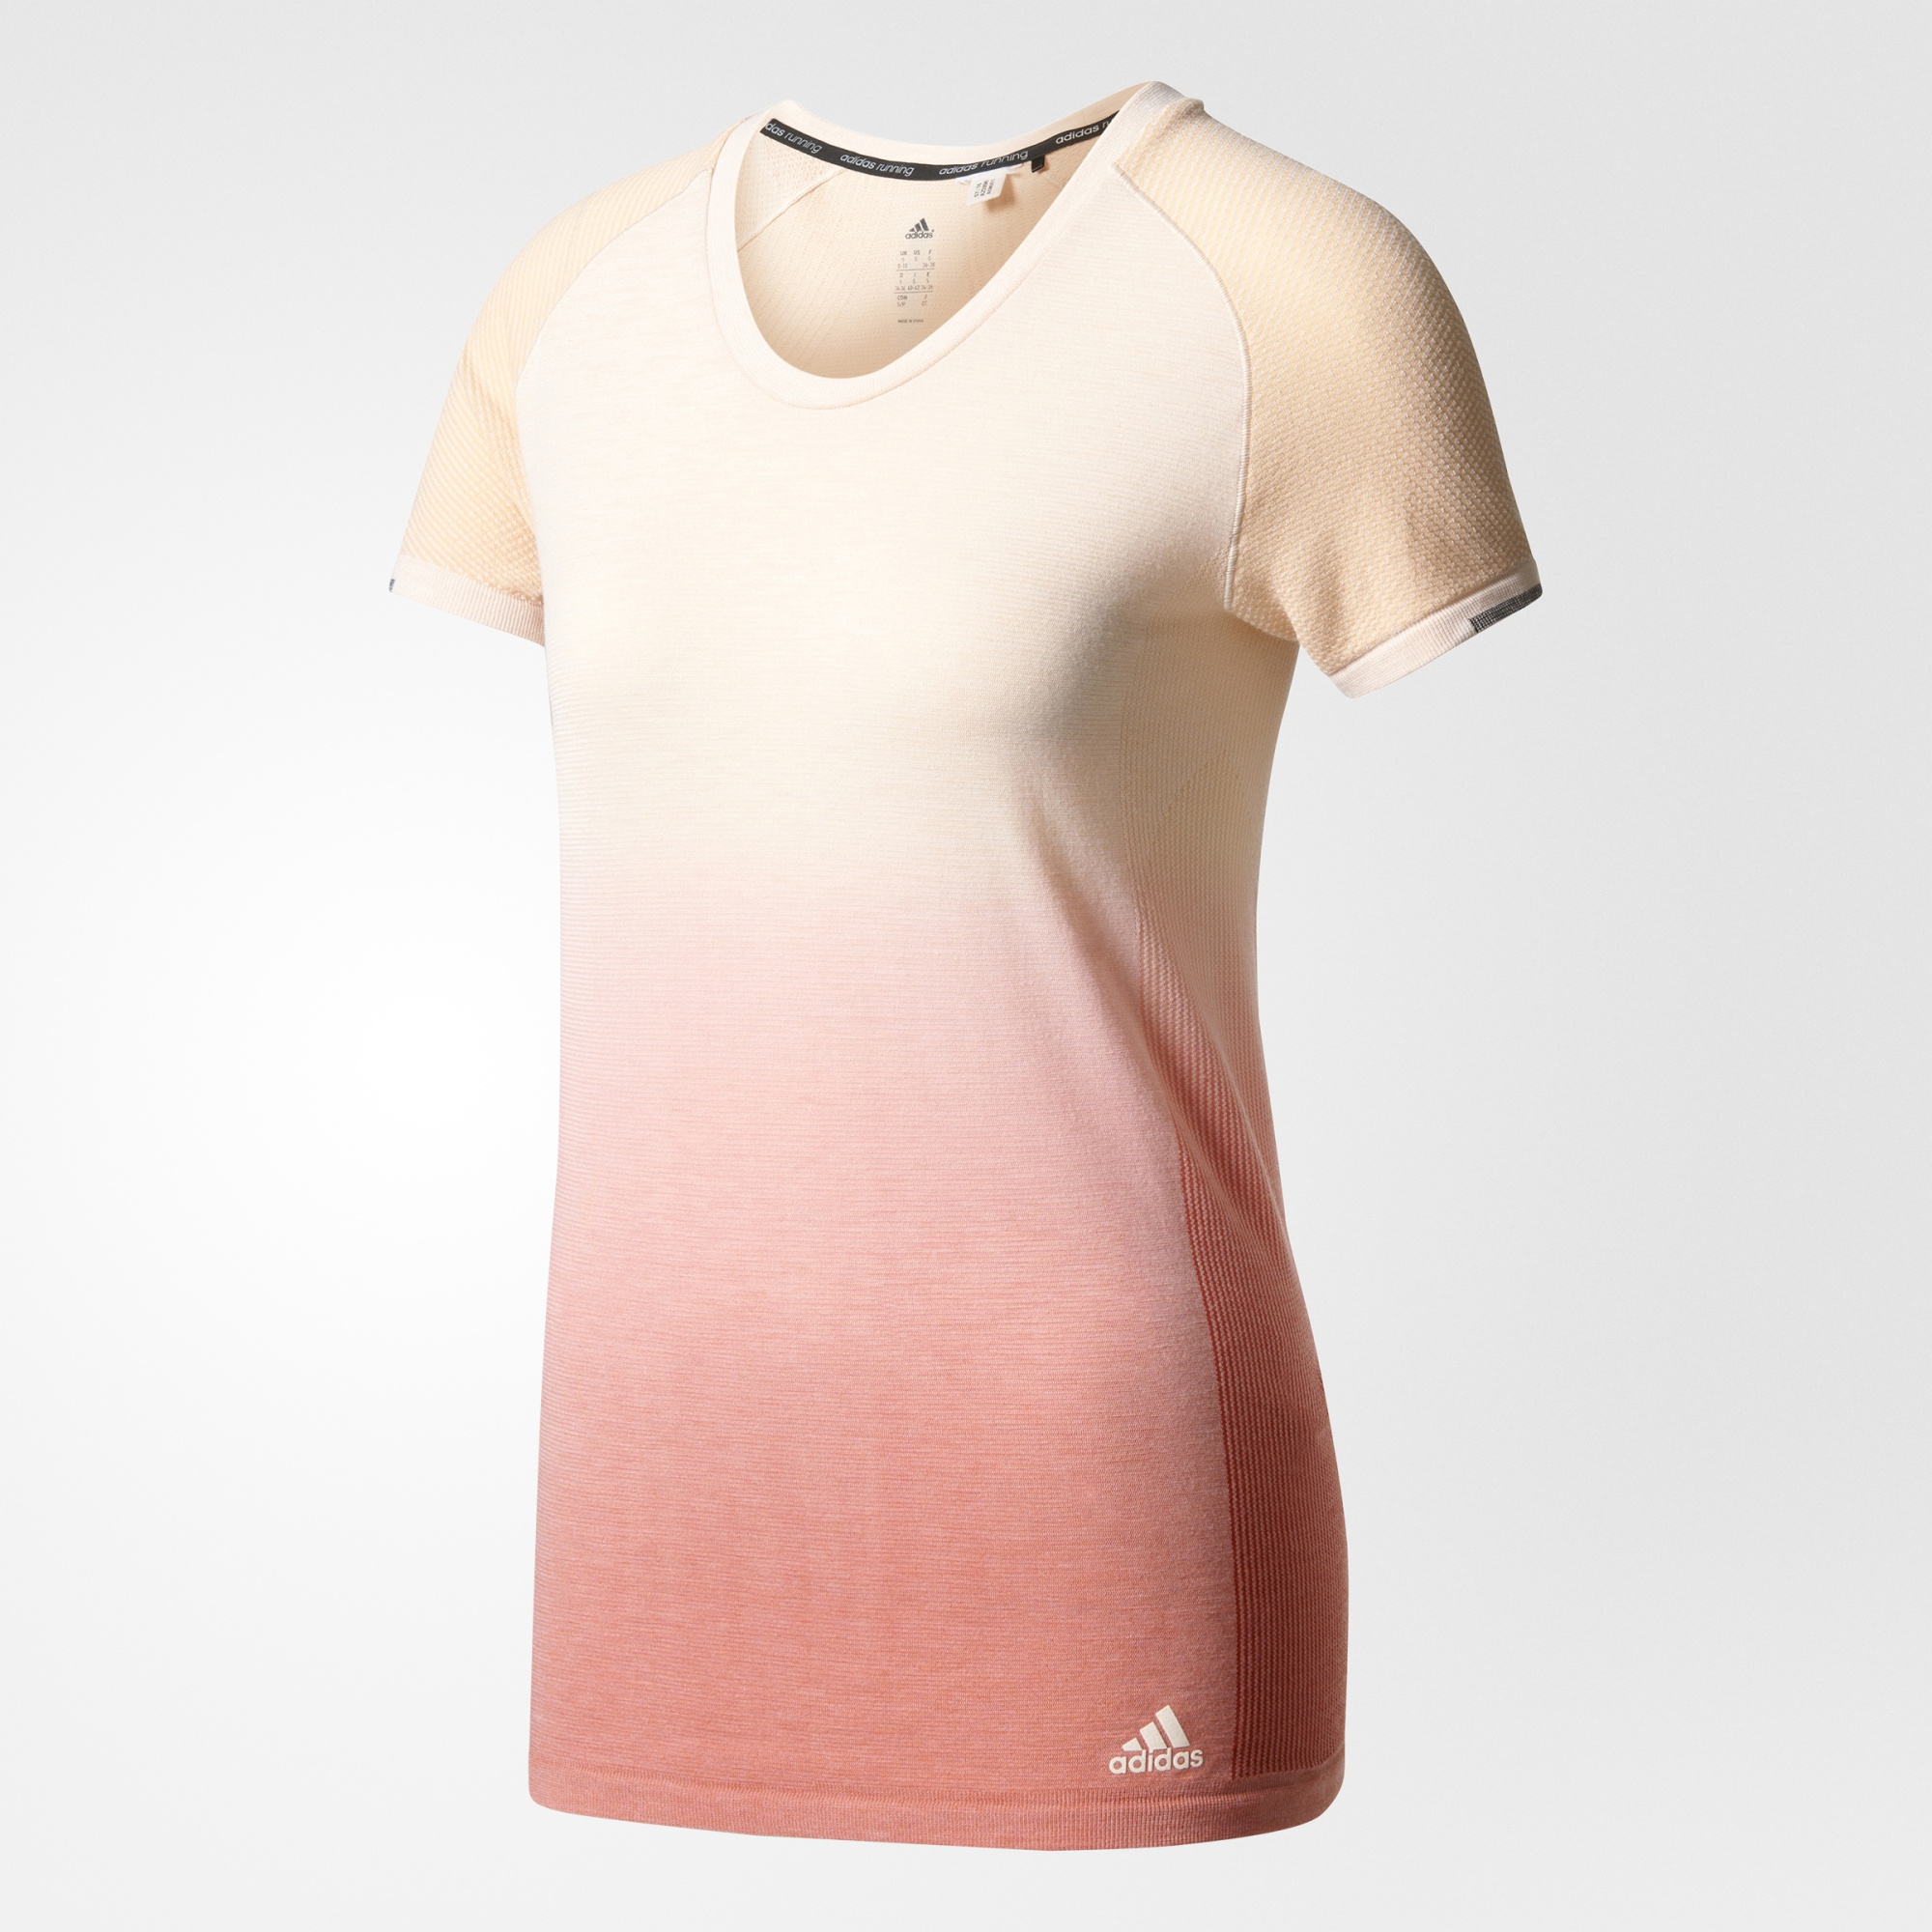 Female T-Shirt Adidas AZ2896 sports and entertainment for women charming white cami tank and zipper fly bowknot lace t shirt for women